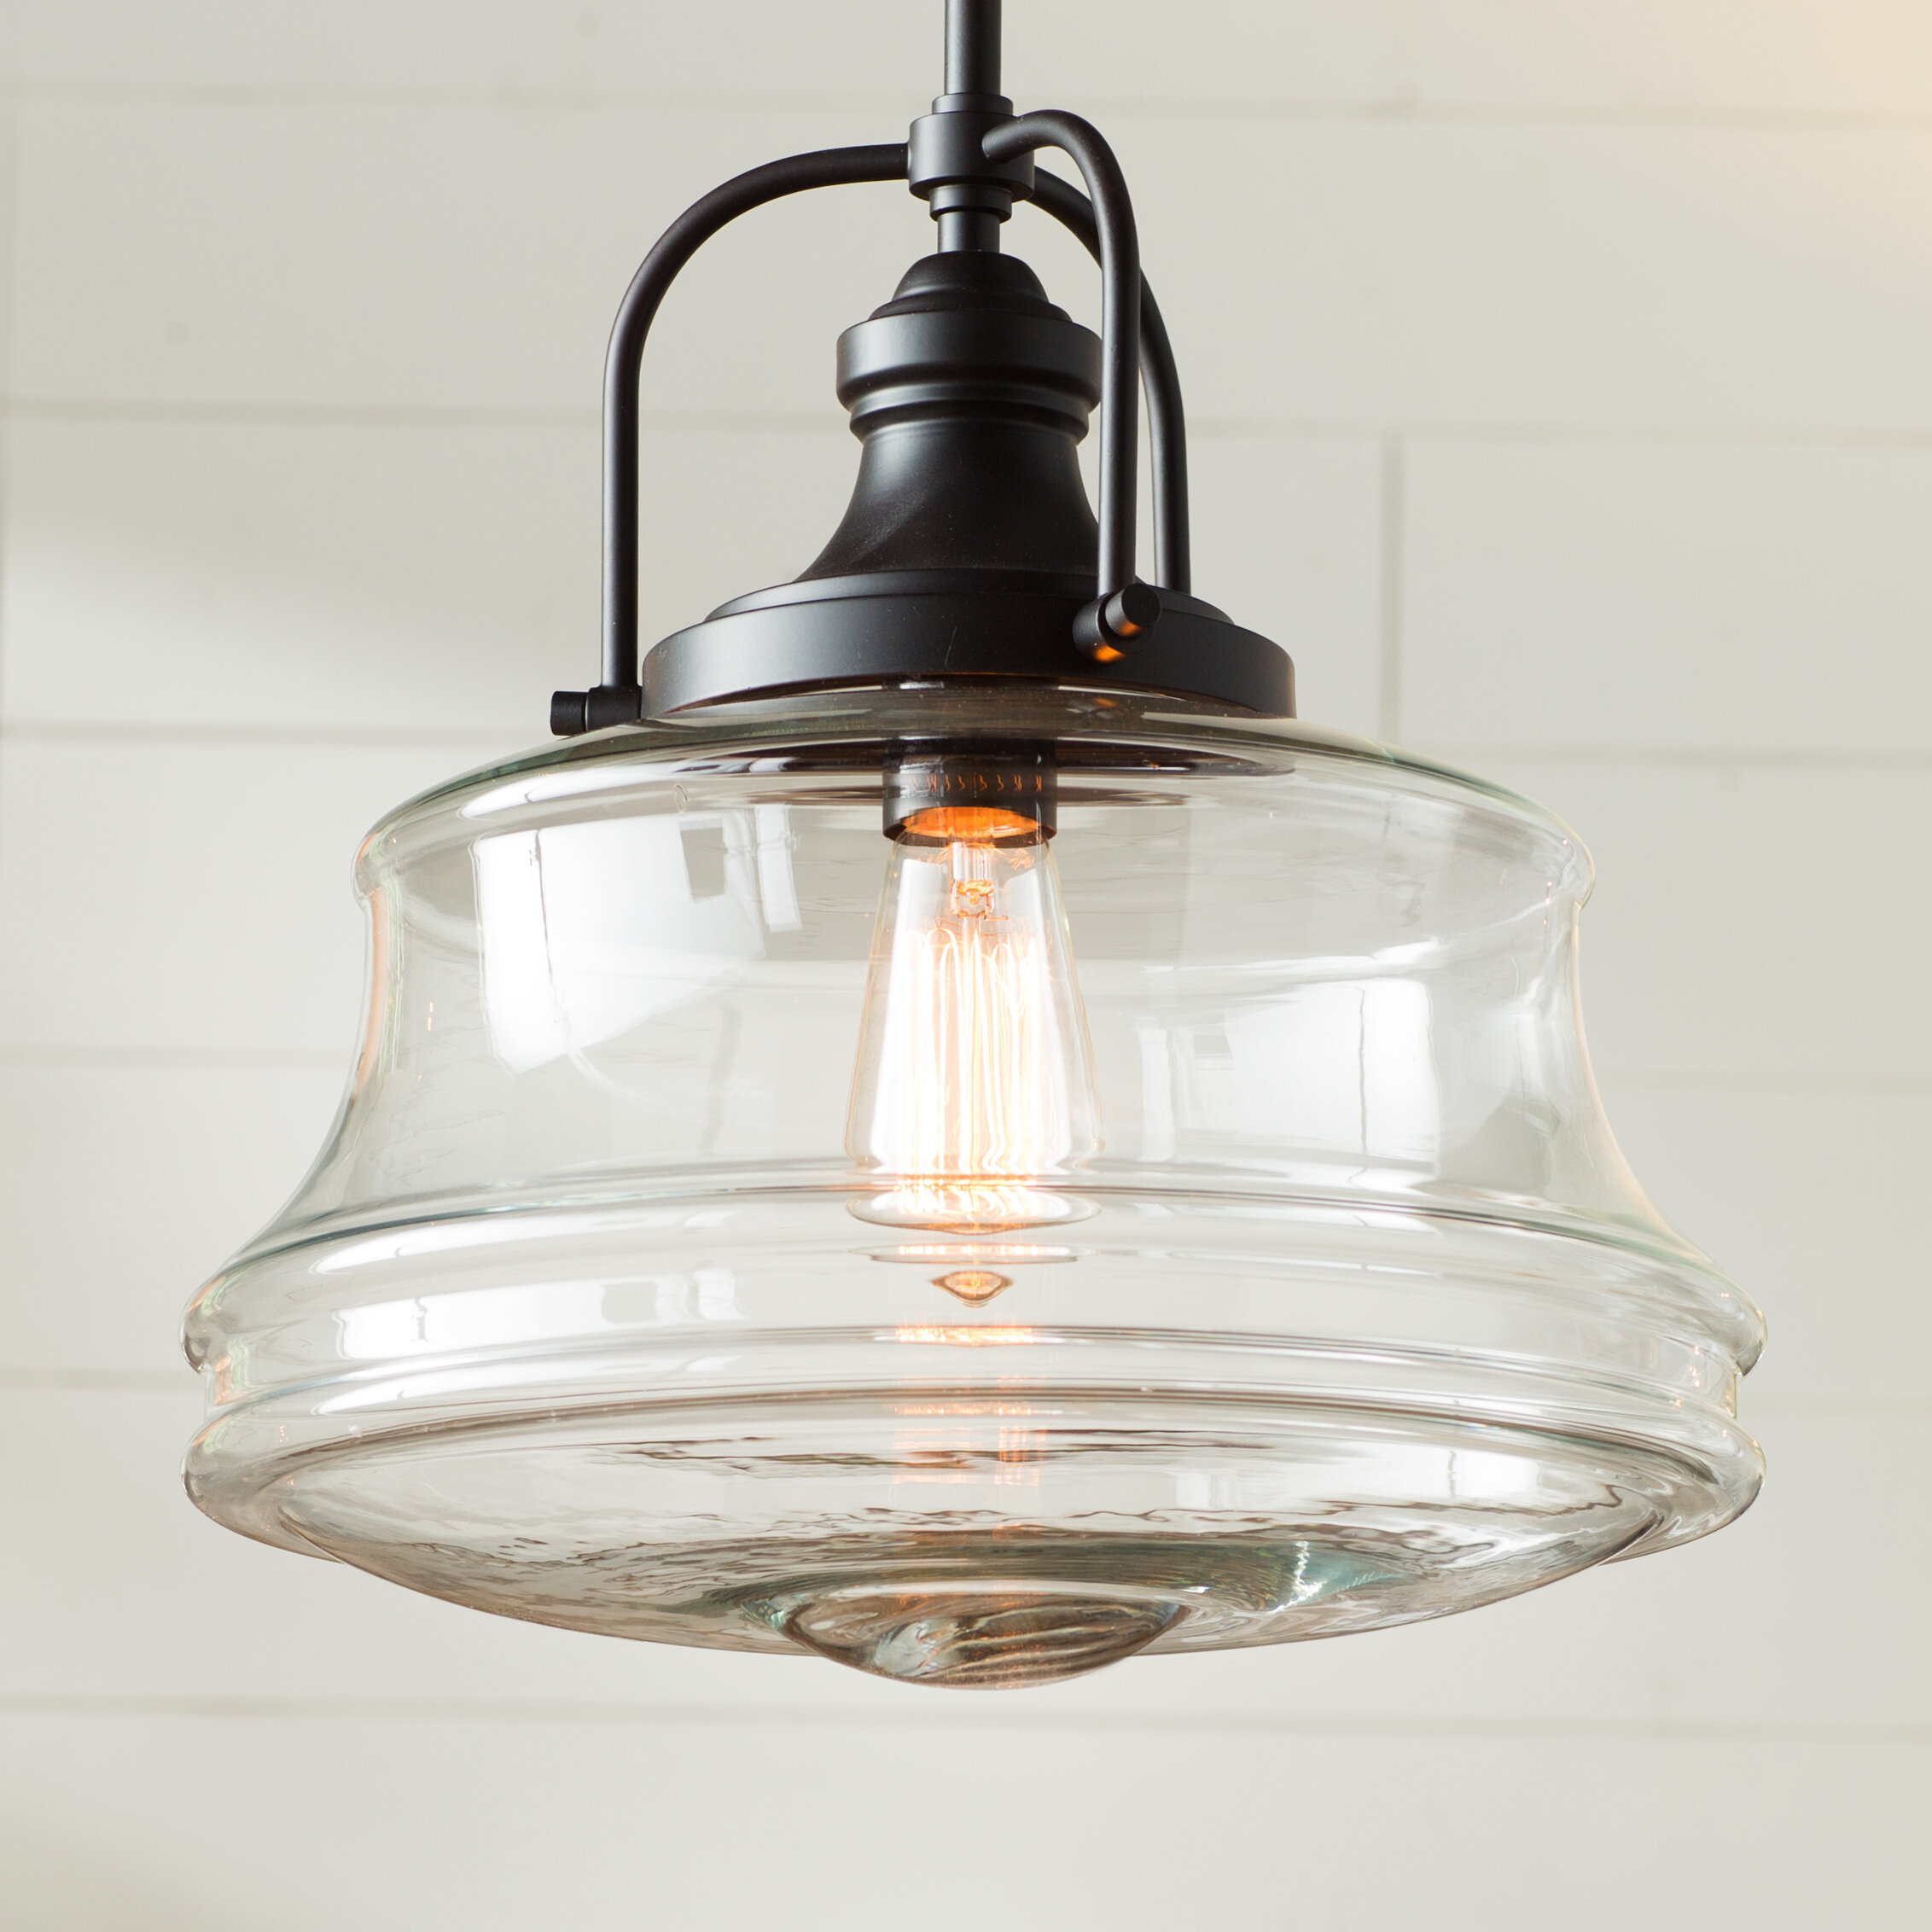 laurel foundry modern farmhouse nadine 1 light schoolhouse pendant